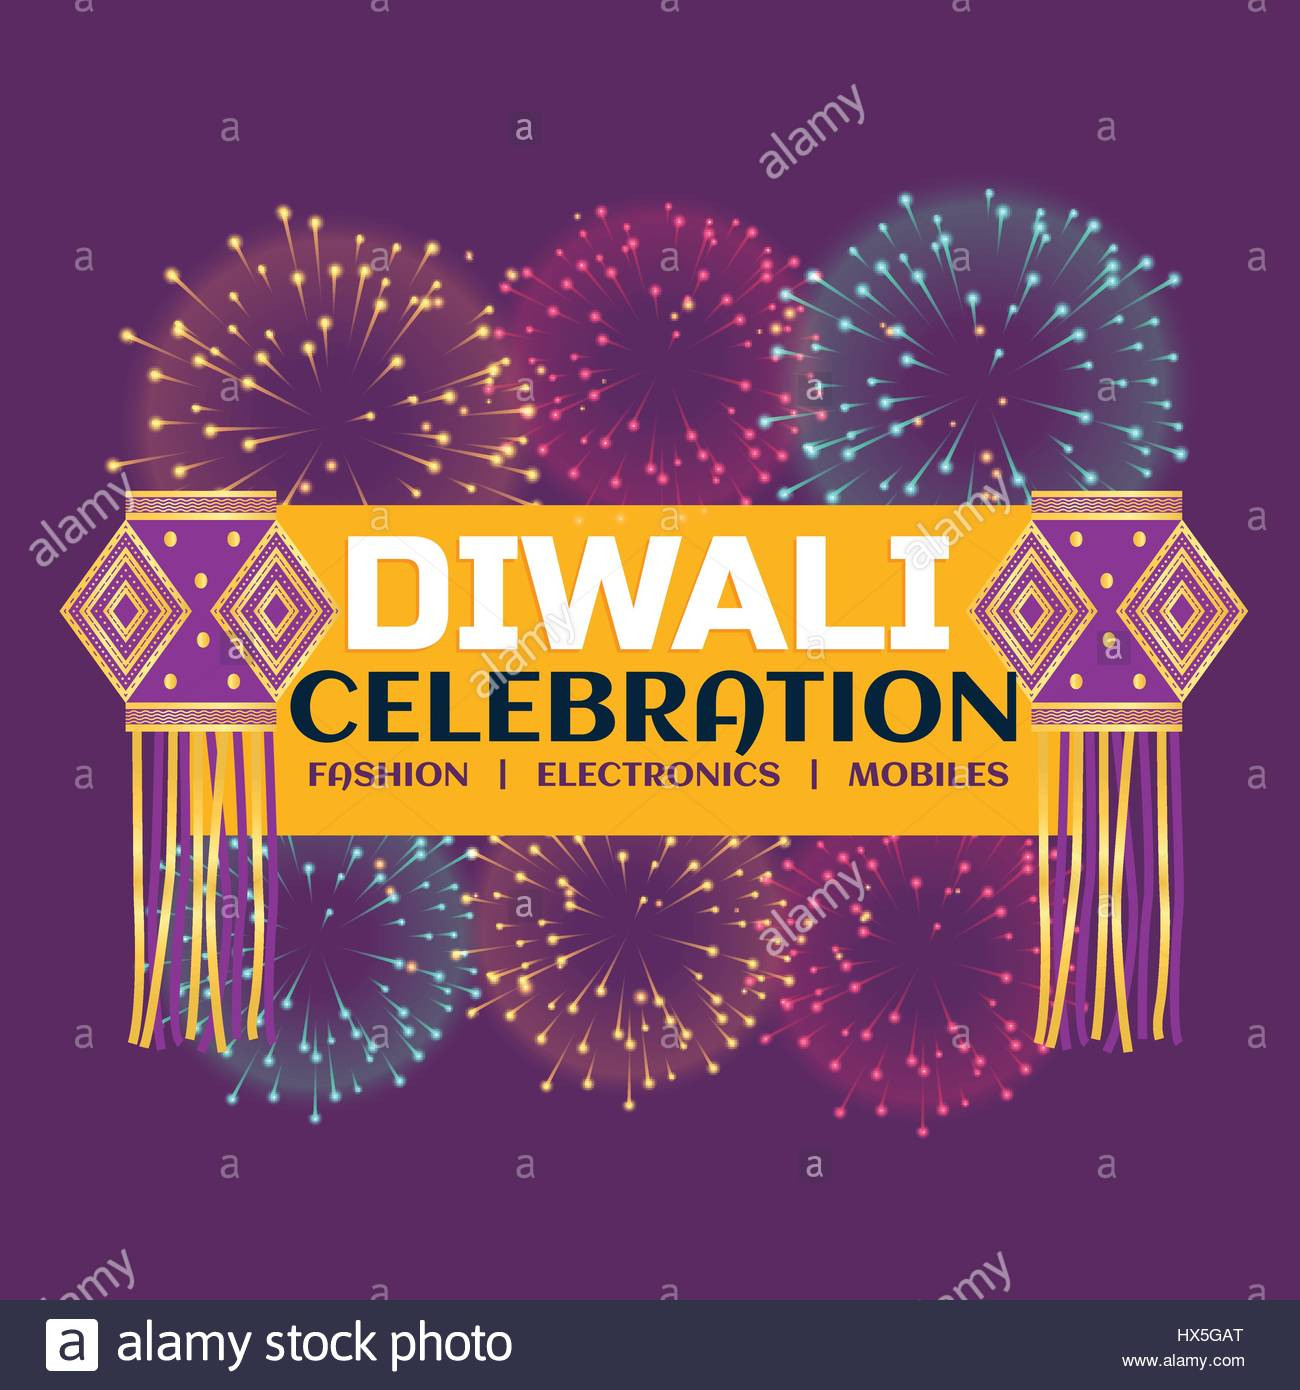 Diwali Festival Celebration Banner With Fireworks And Hanging Lamps On Purple Background